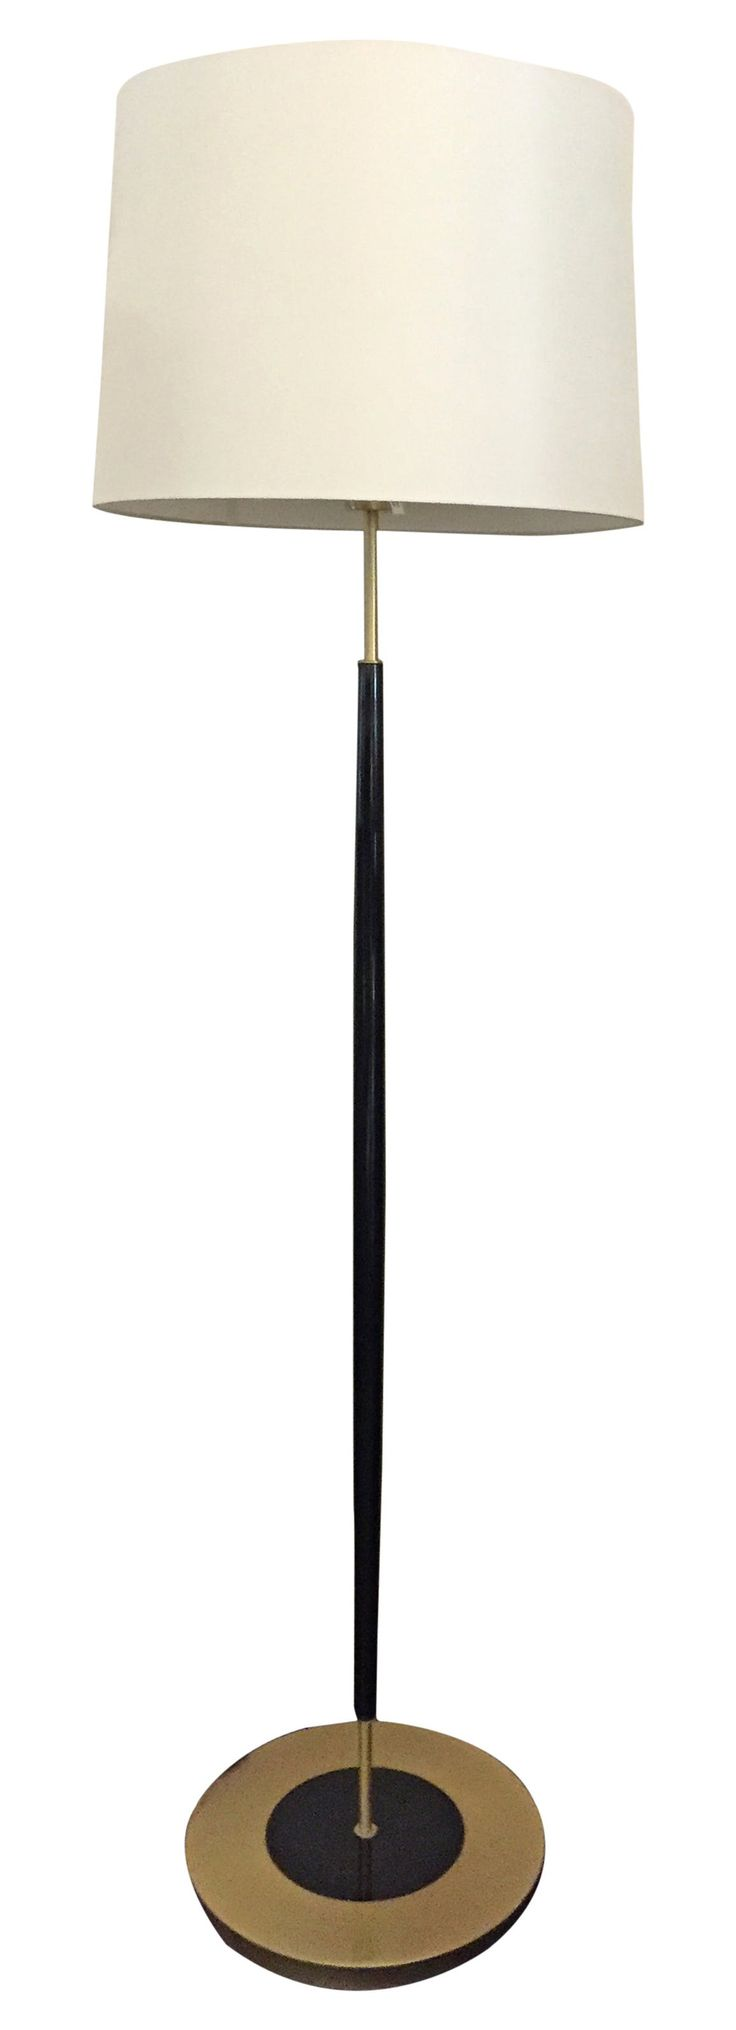 Buy ZOE FLOOR LAMP IN BLACK by Birgit Israel - Made-to-Order designer Lighting from Dering Hall's collection of Art Deco Contemporary Transitional Floor Lamps.